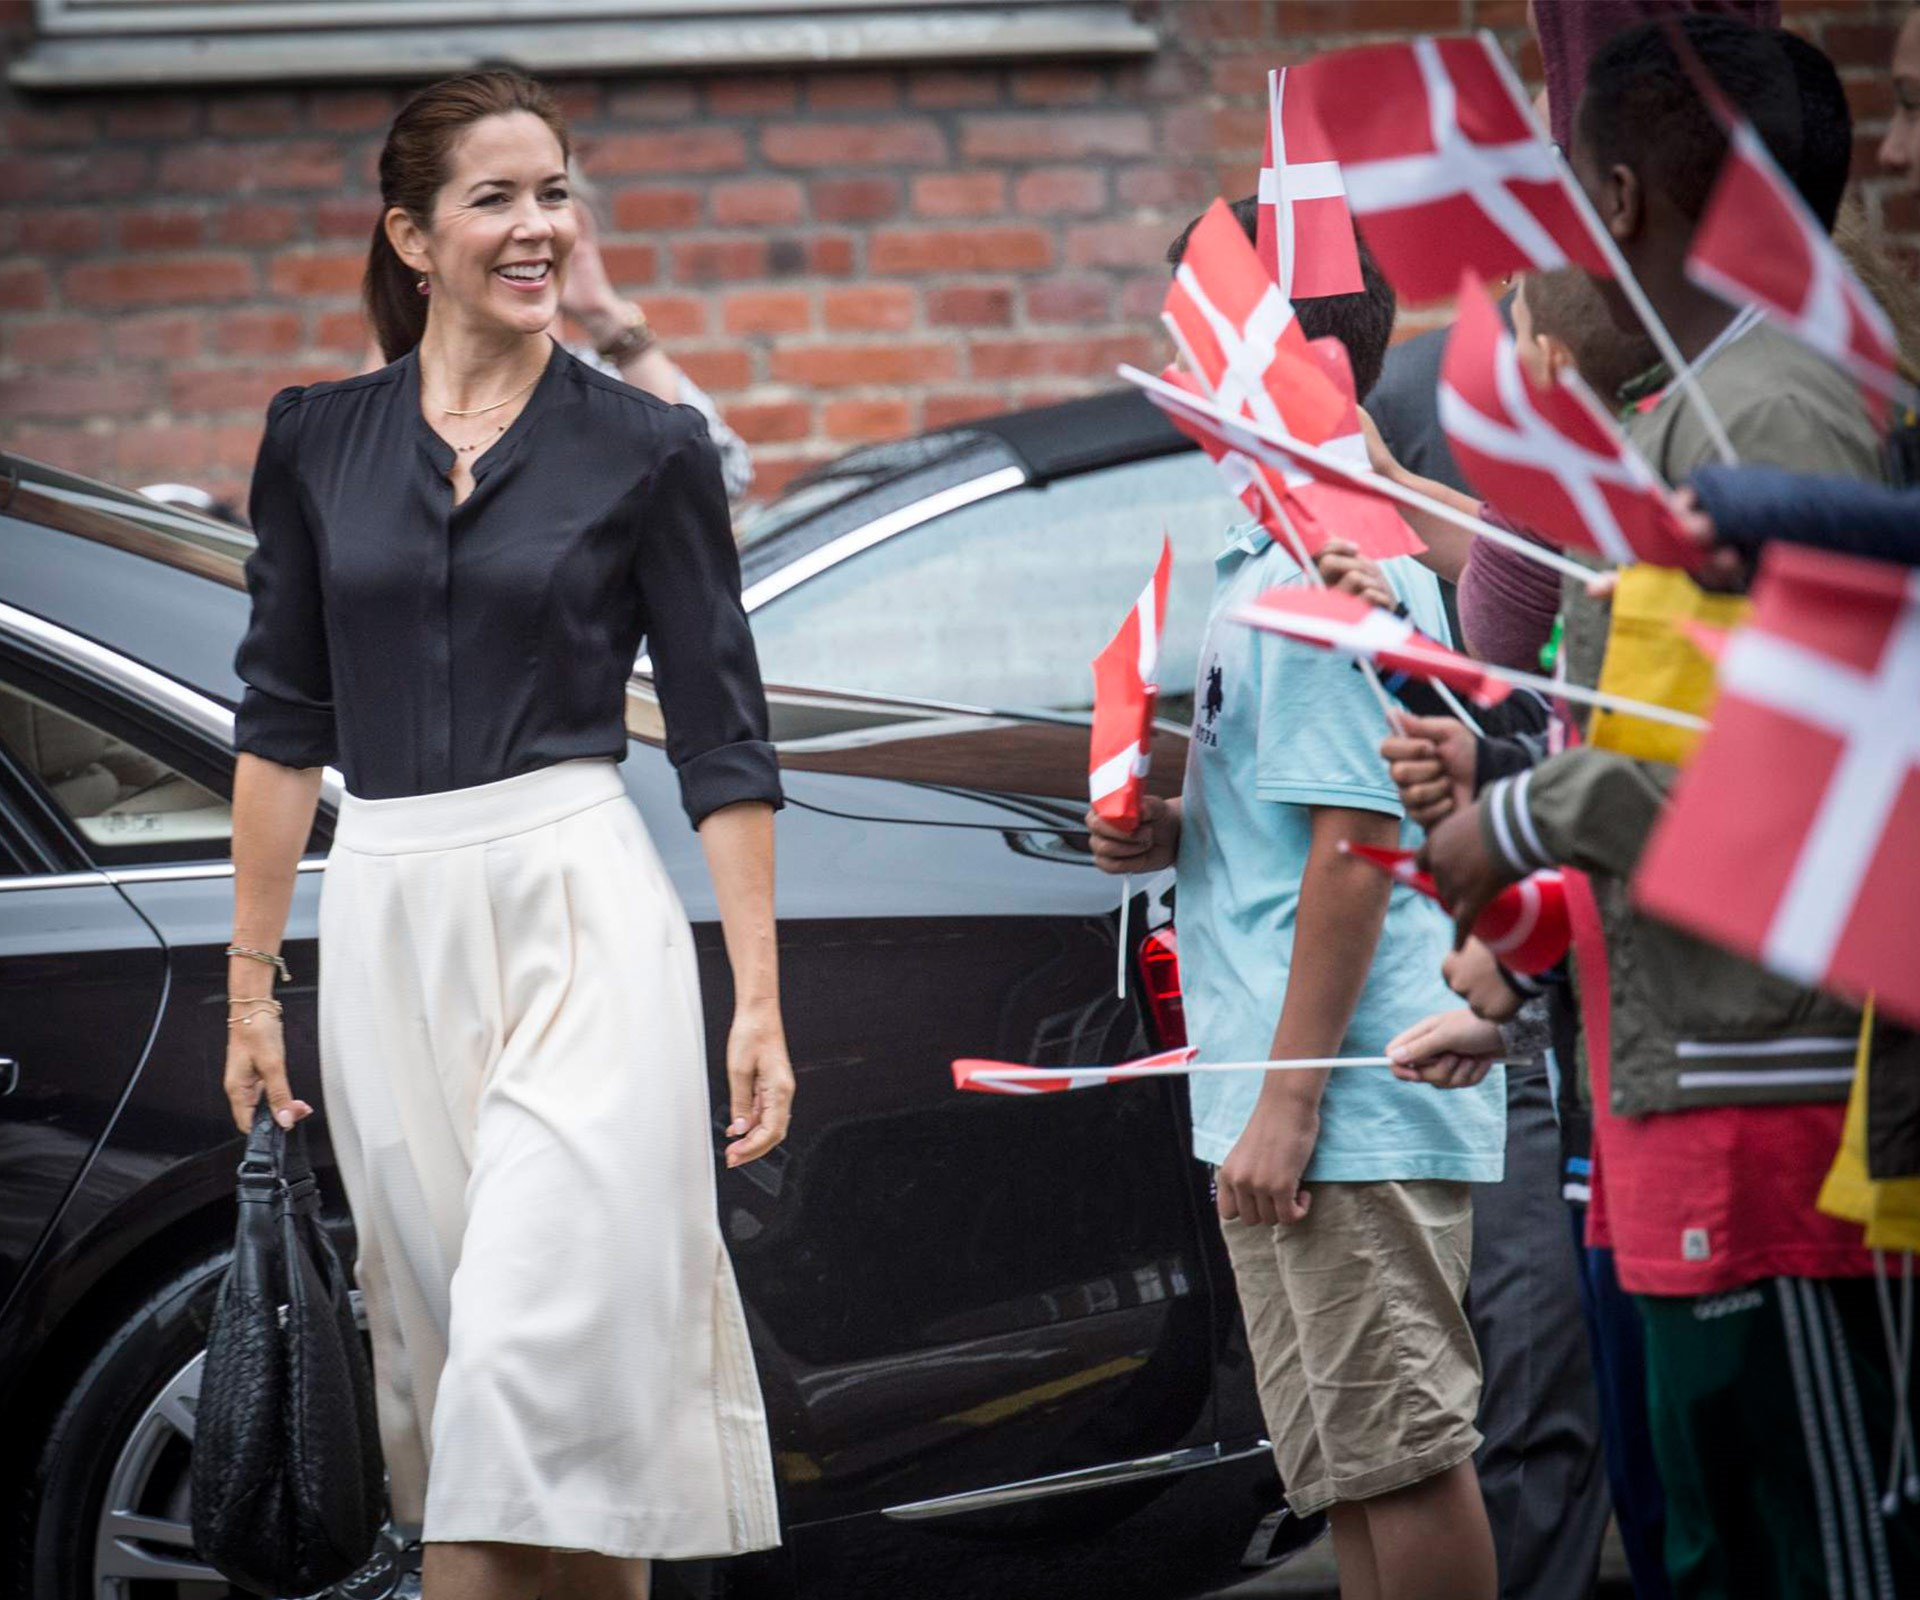 Princess Mary passionately advocates for anti-domestic abuse at Loving Measure event:Crown Princess Mary of Denmark was greeted by excited year eight students as she arrived at Guldberg academy in Copenhagen to participate in the *Loving Measure* event.